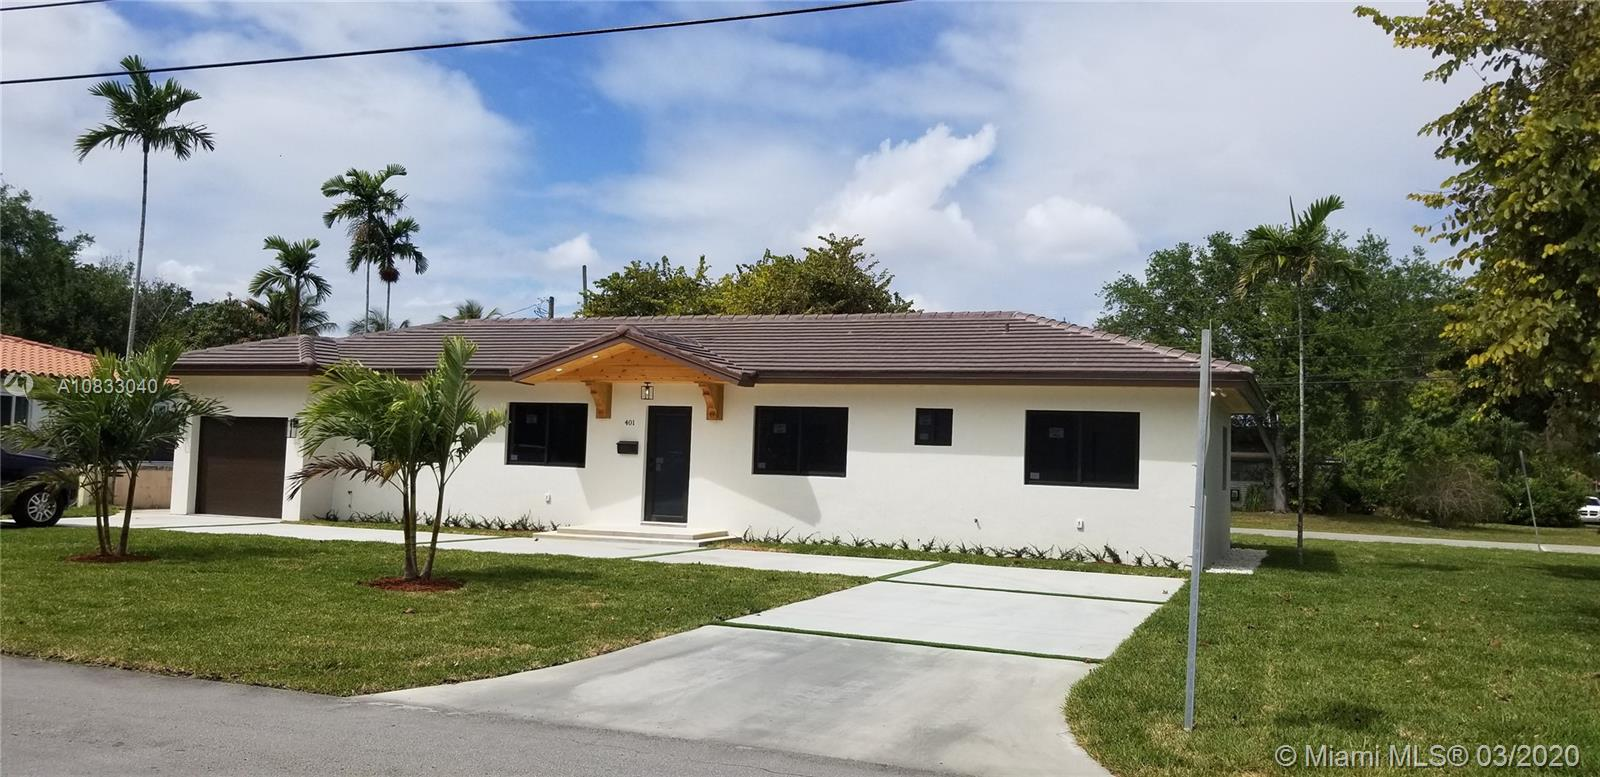 401  Hunting Lodge Dr  For Sale A10833040, FL